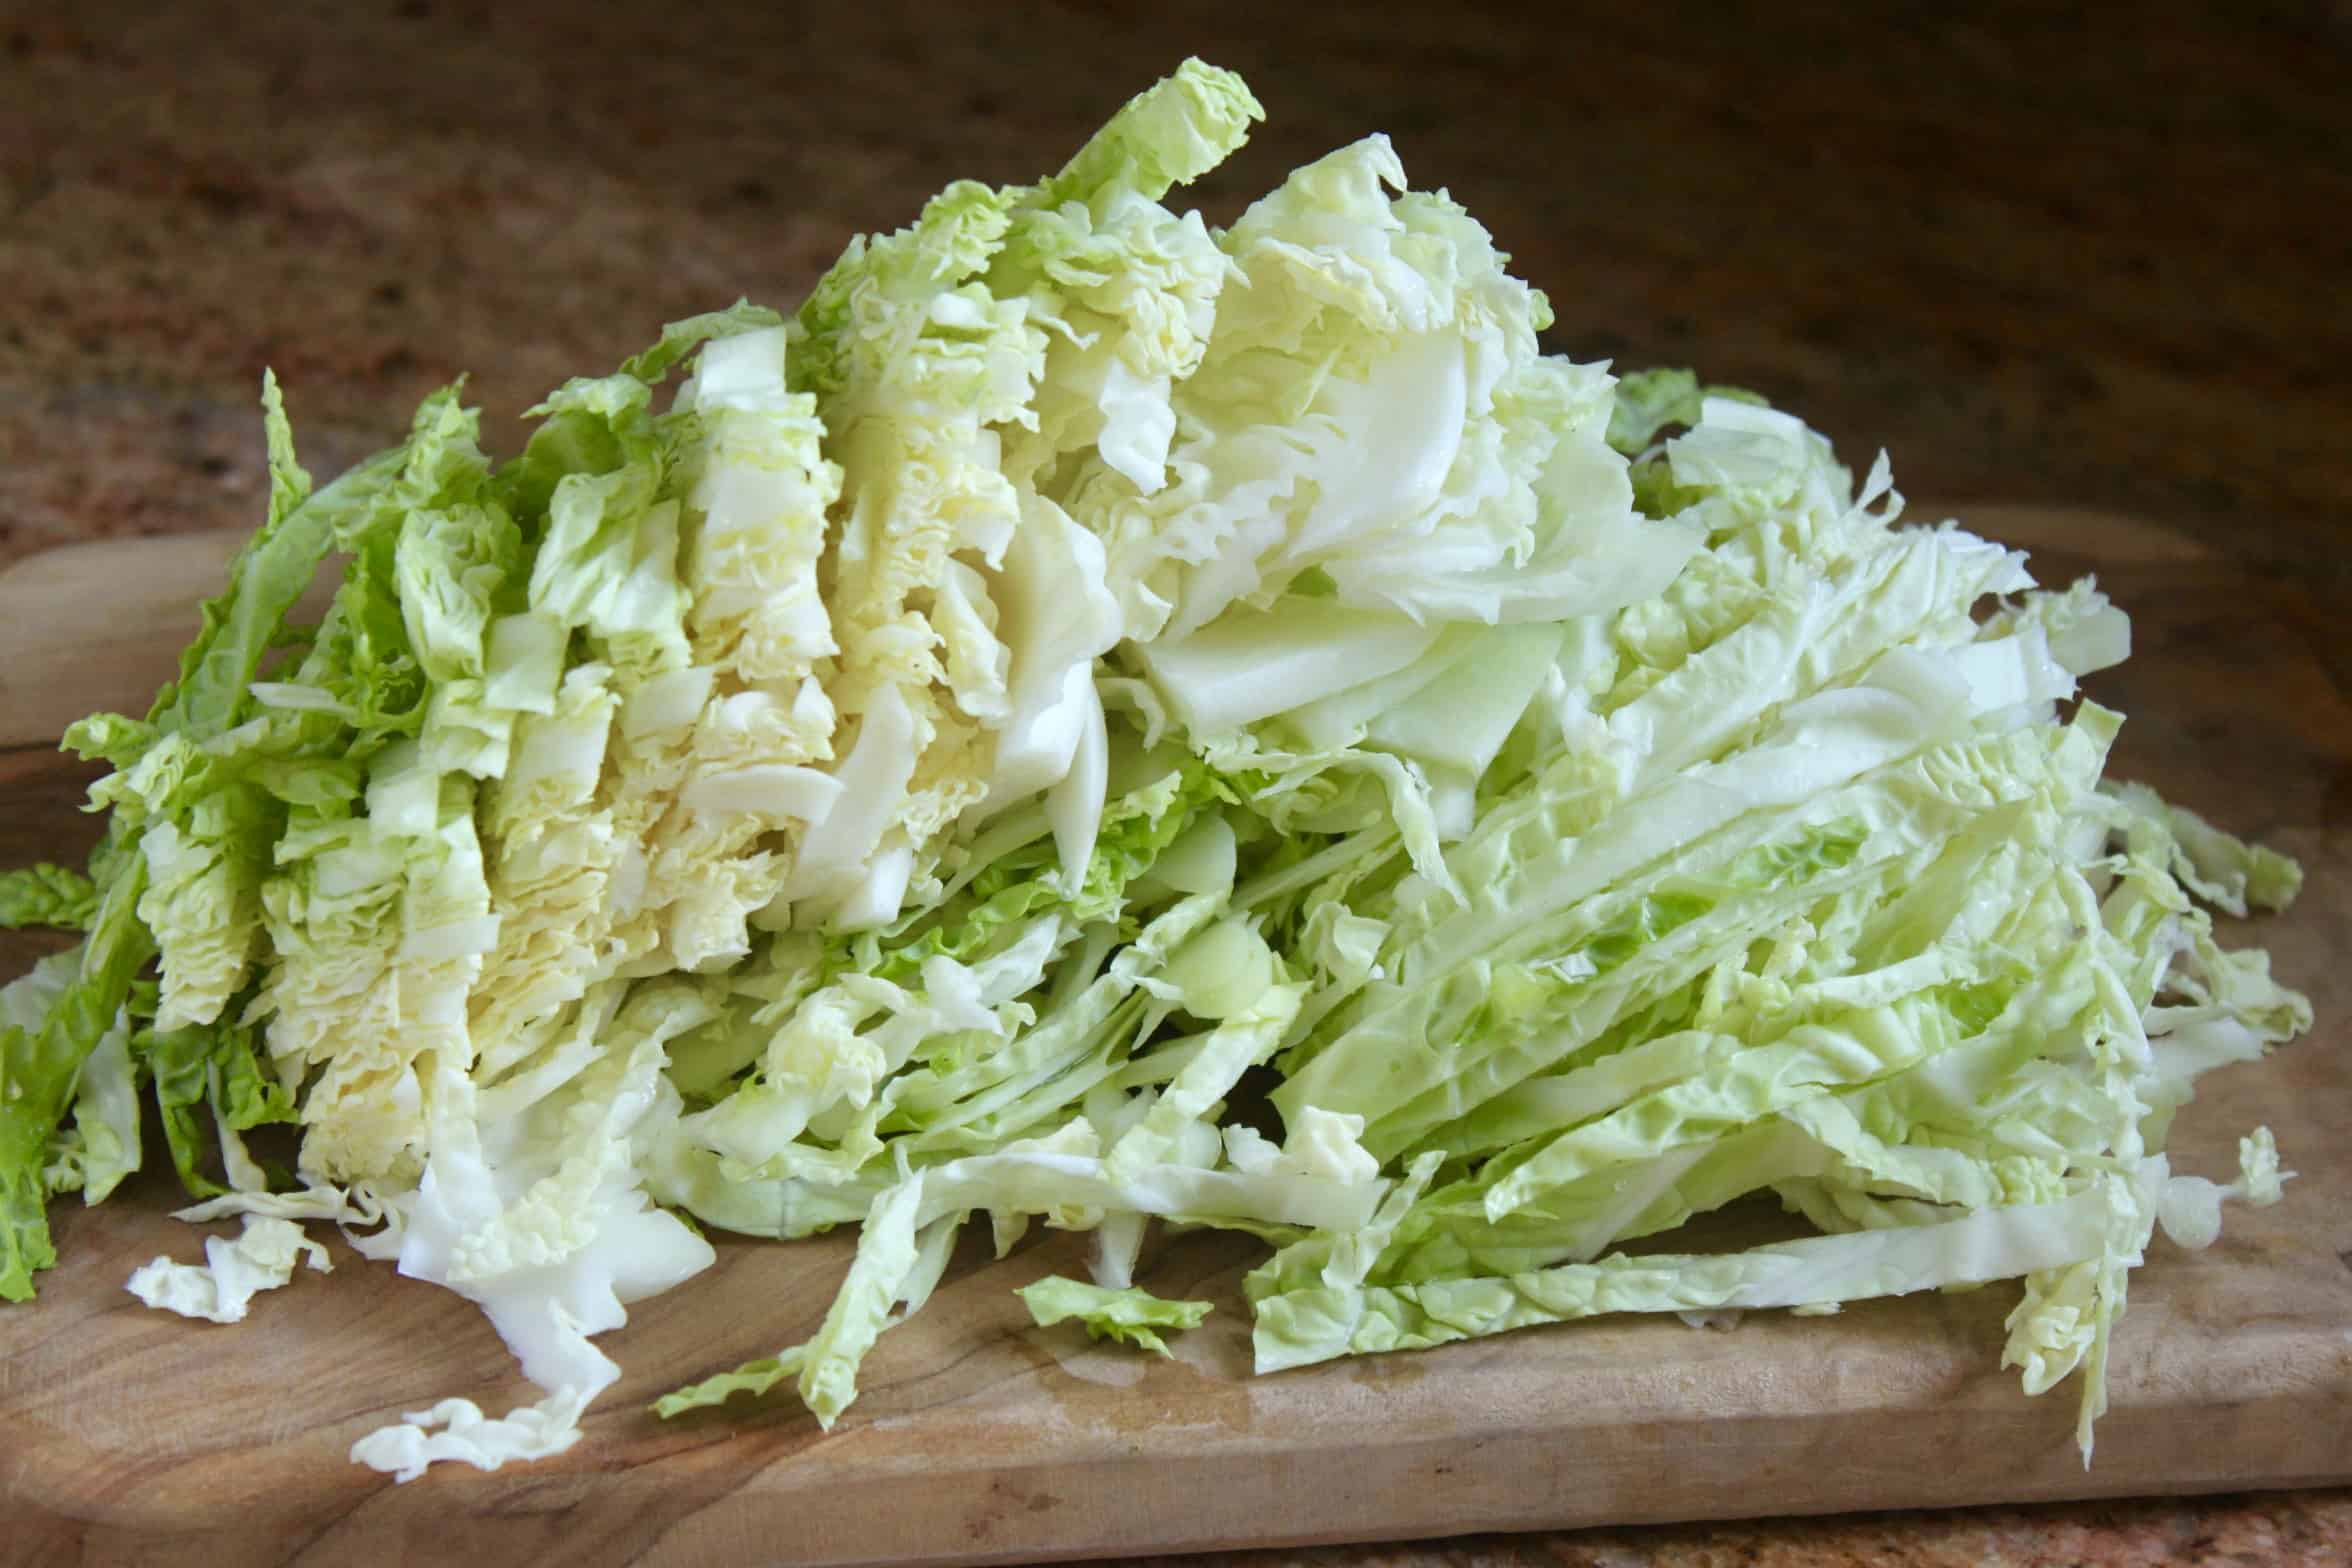 shredded cabbage on a board